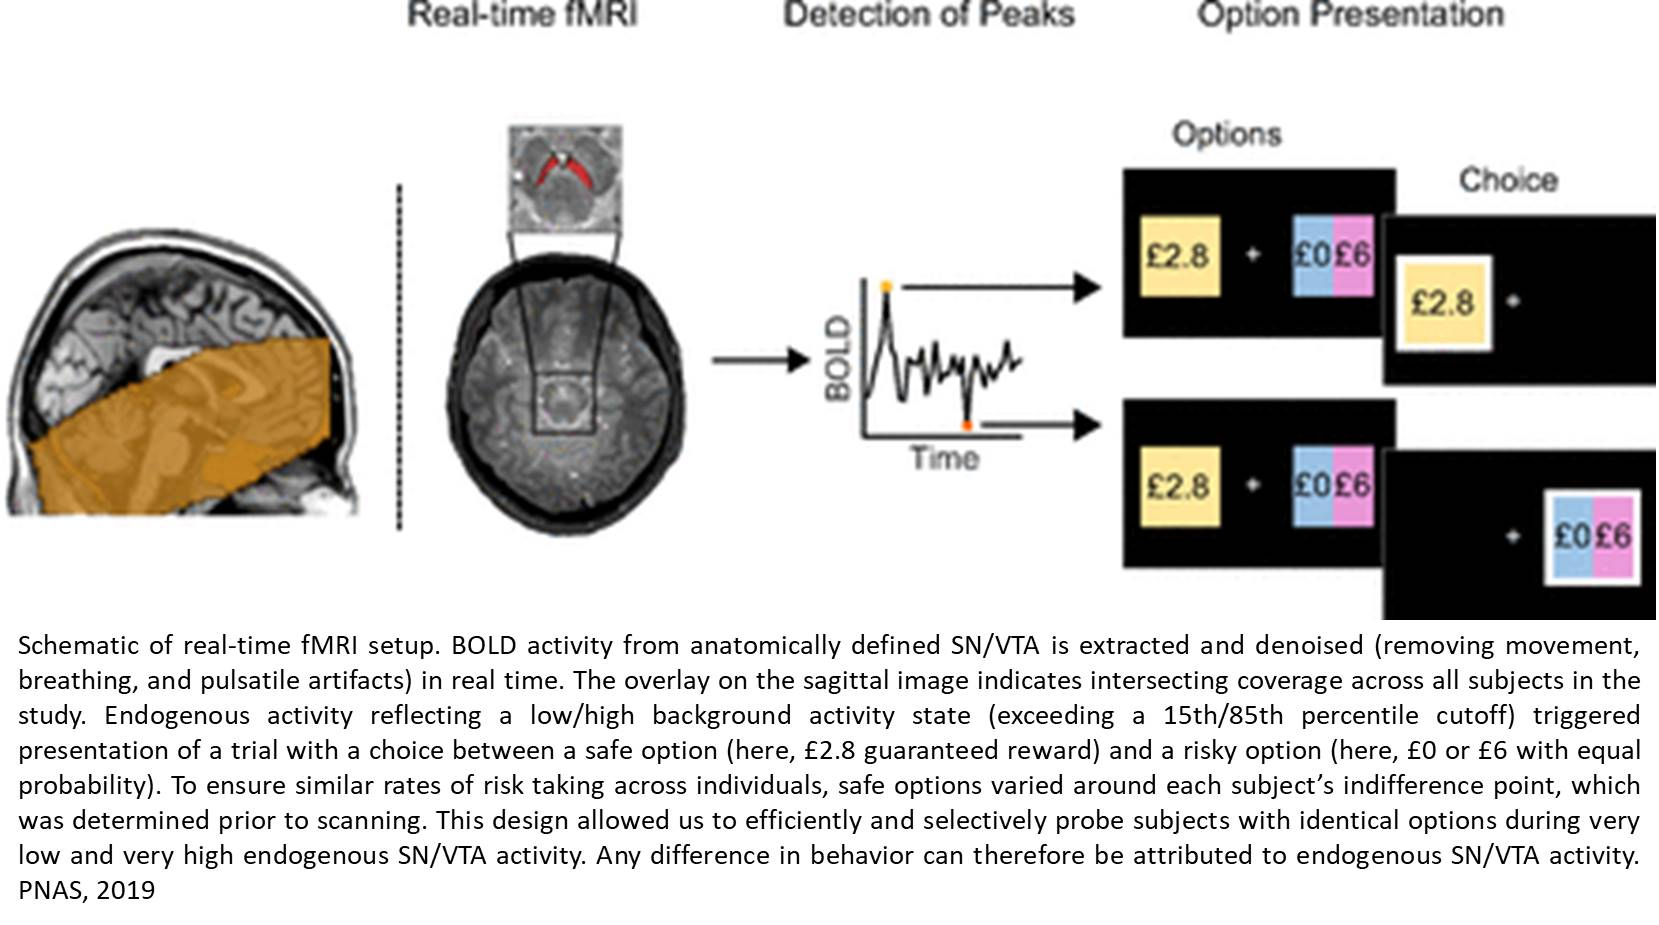 Spontaneous brain fluctuations influence risk-taking